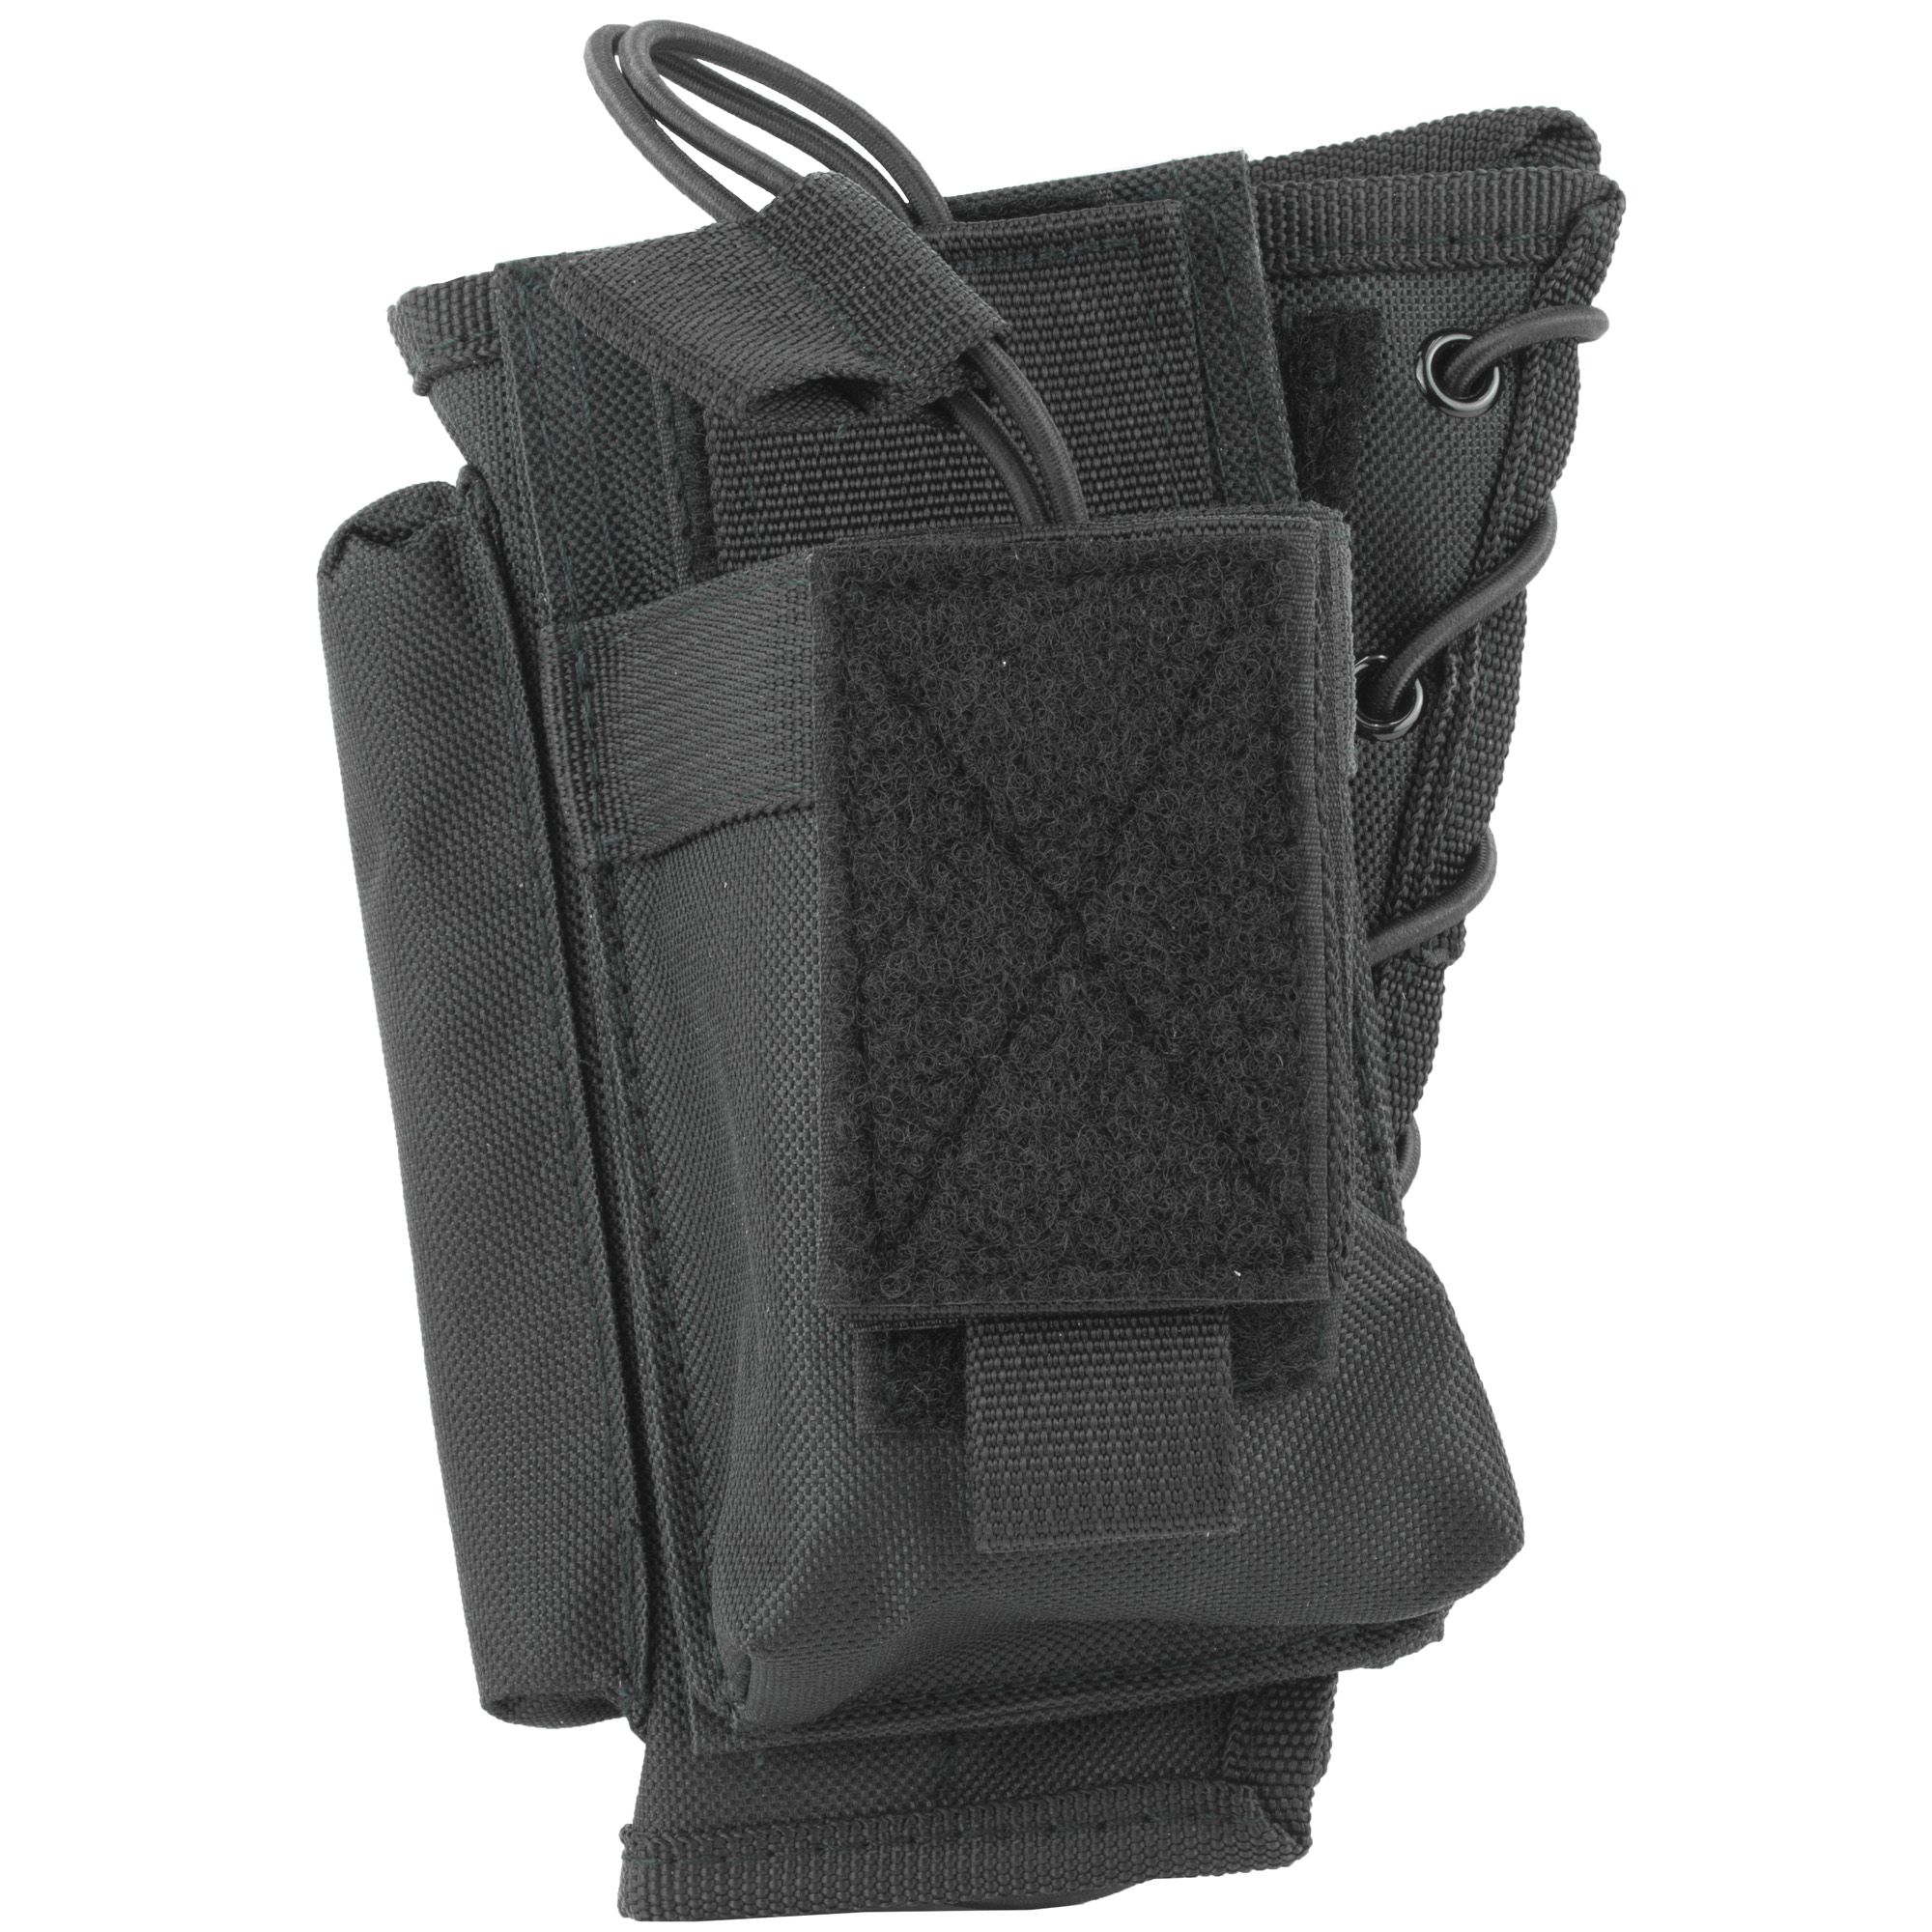 This stock riser with magazine pouch fits most rifles. Holds all AR and AK mags.